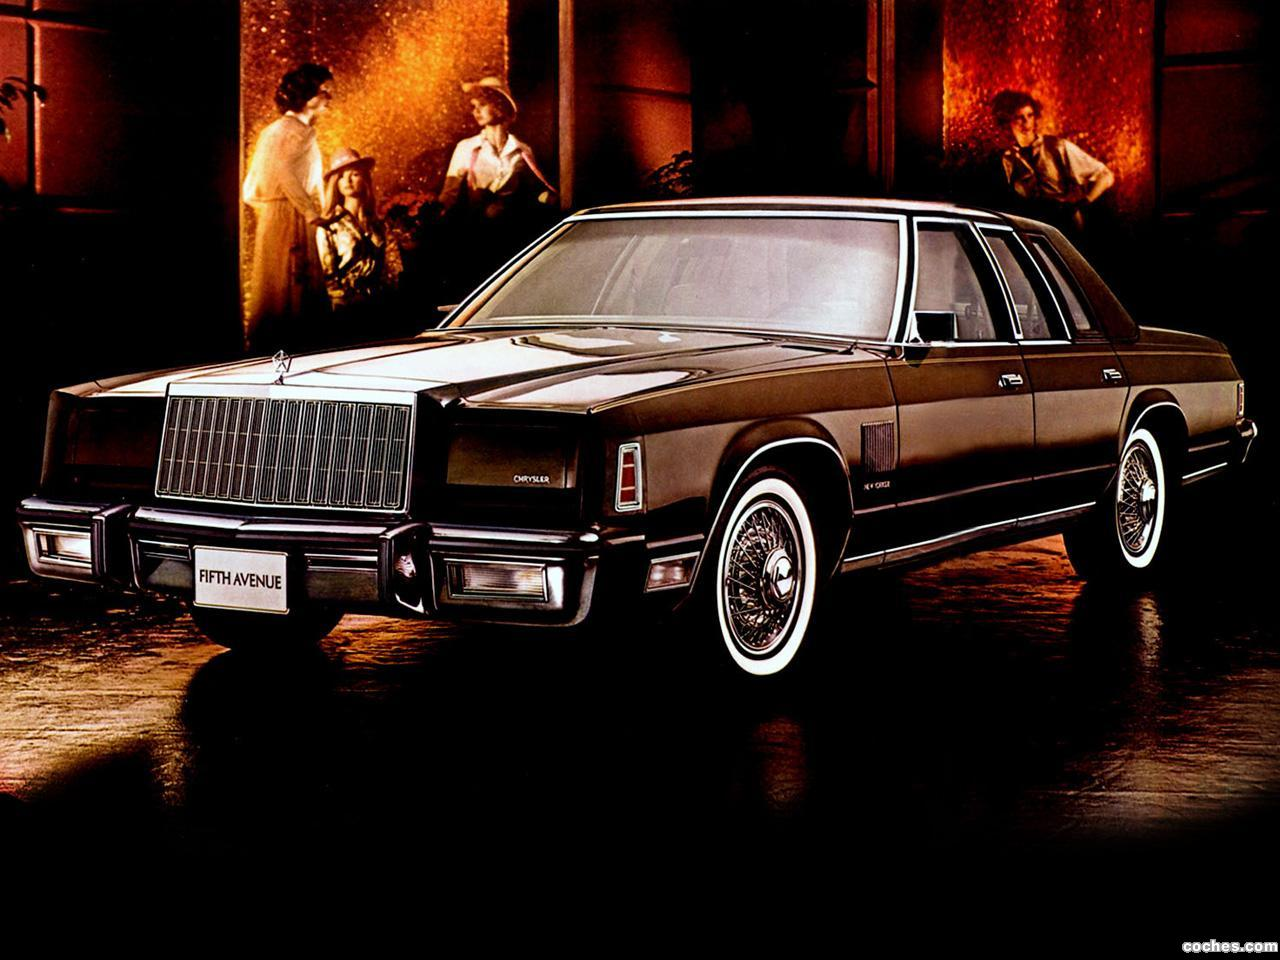 Foto 1 de Chrysler Fifth Avenue 1980